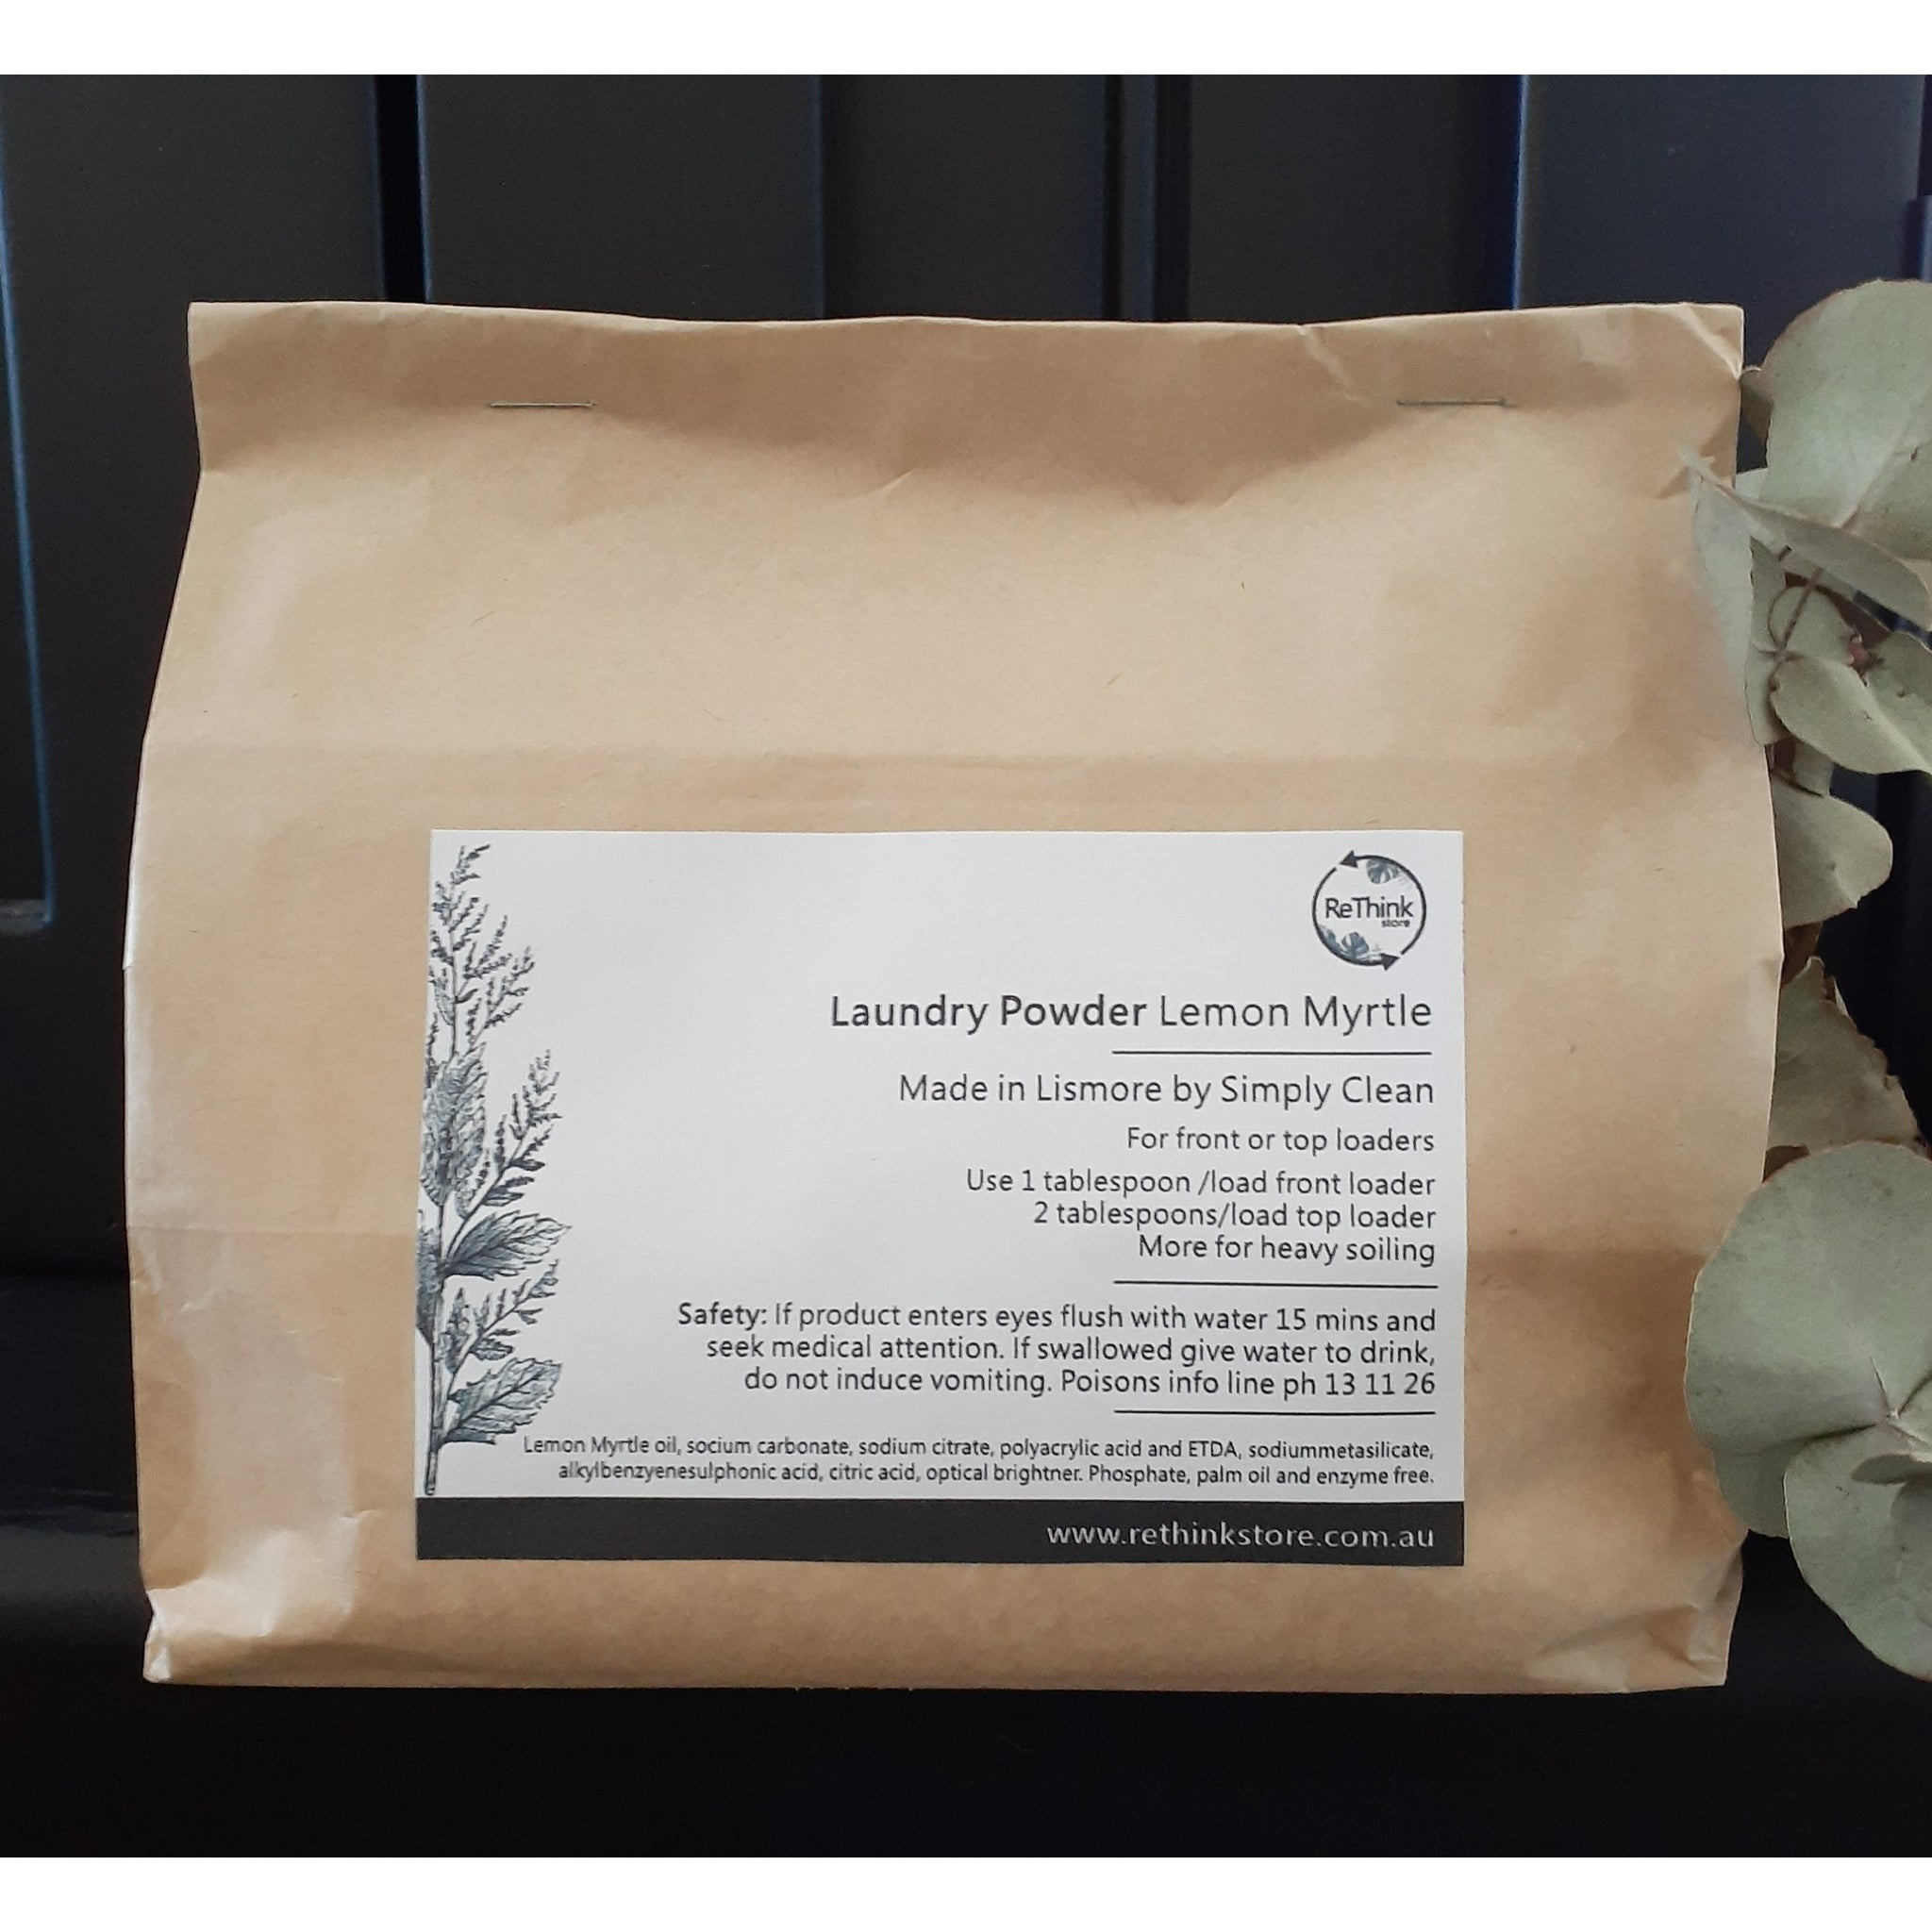 Laundry Powder Lemon Myrtle-Household-Simply Clean-ReThink Store